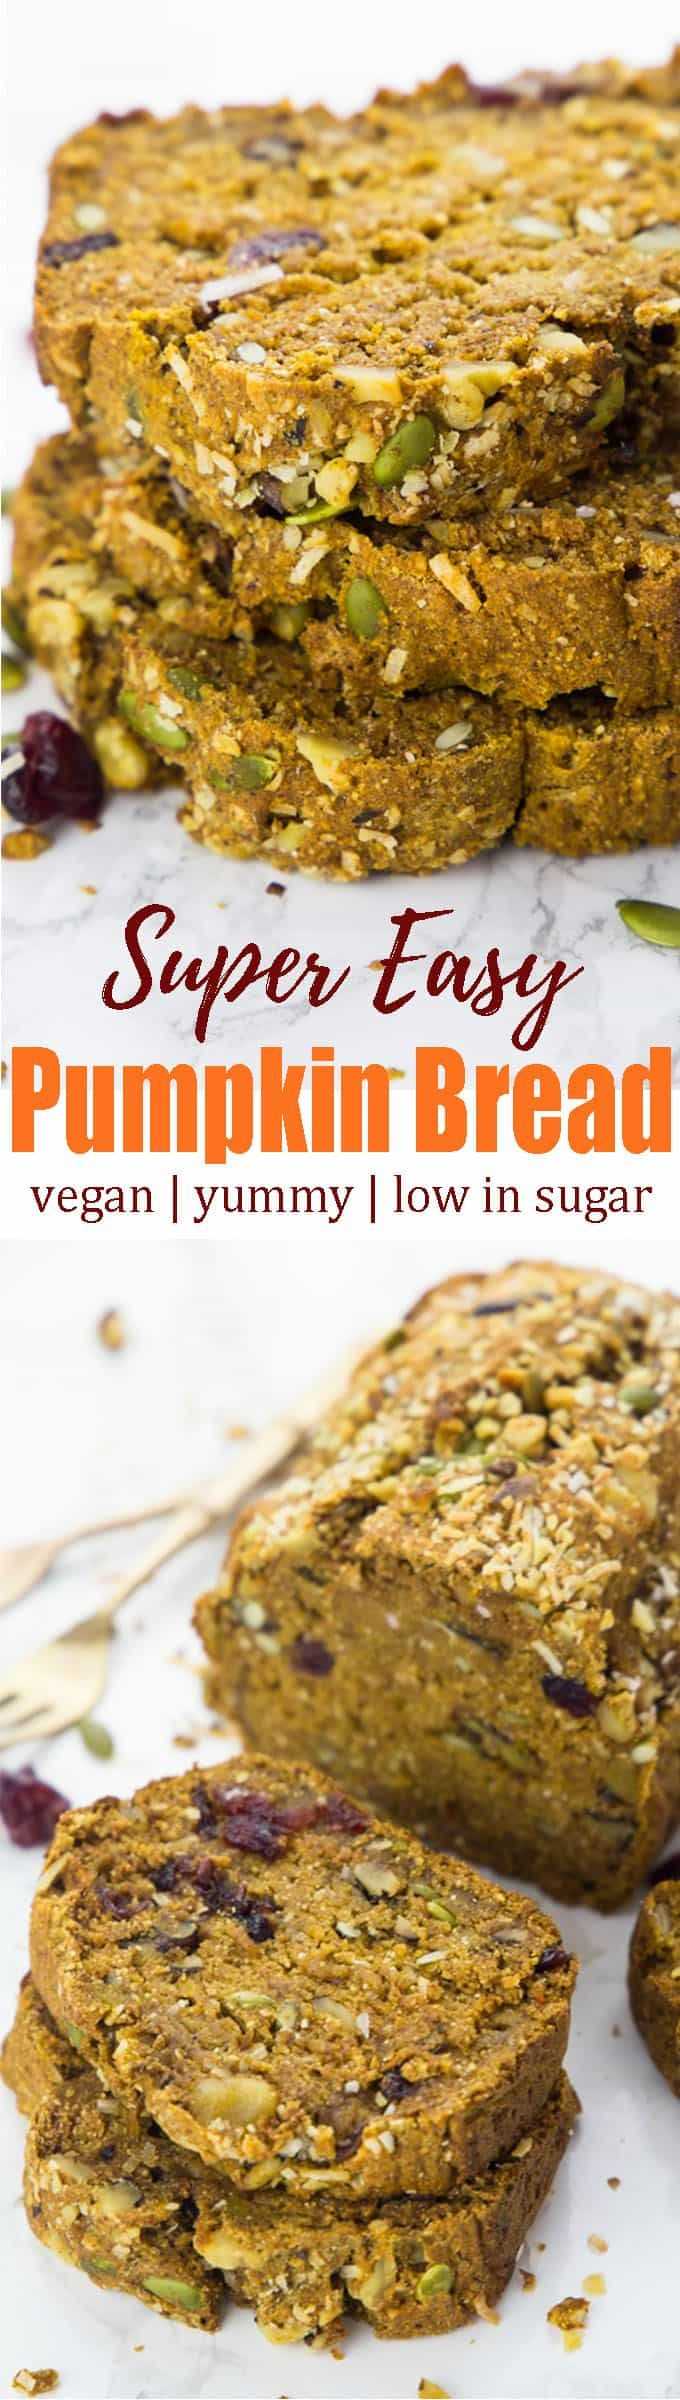 This vegan pumpkin bread with cranberries and pumpkin seeds is perfect to celebrate the beginning of fall! It's super easy to make, low in sugar, and sooo delicious! Vegan baking and vegan desserts in general can be so simple! <3